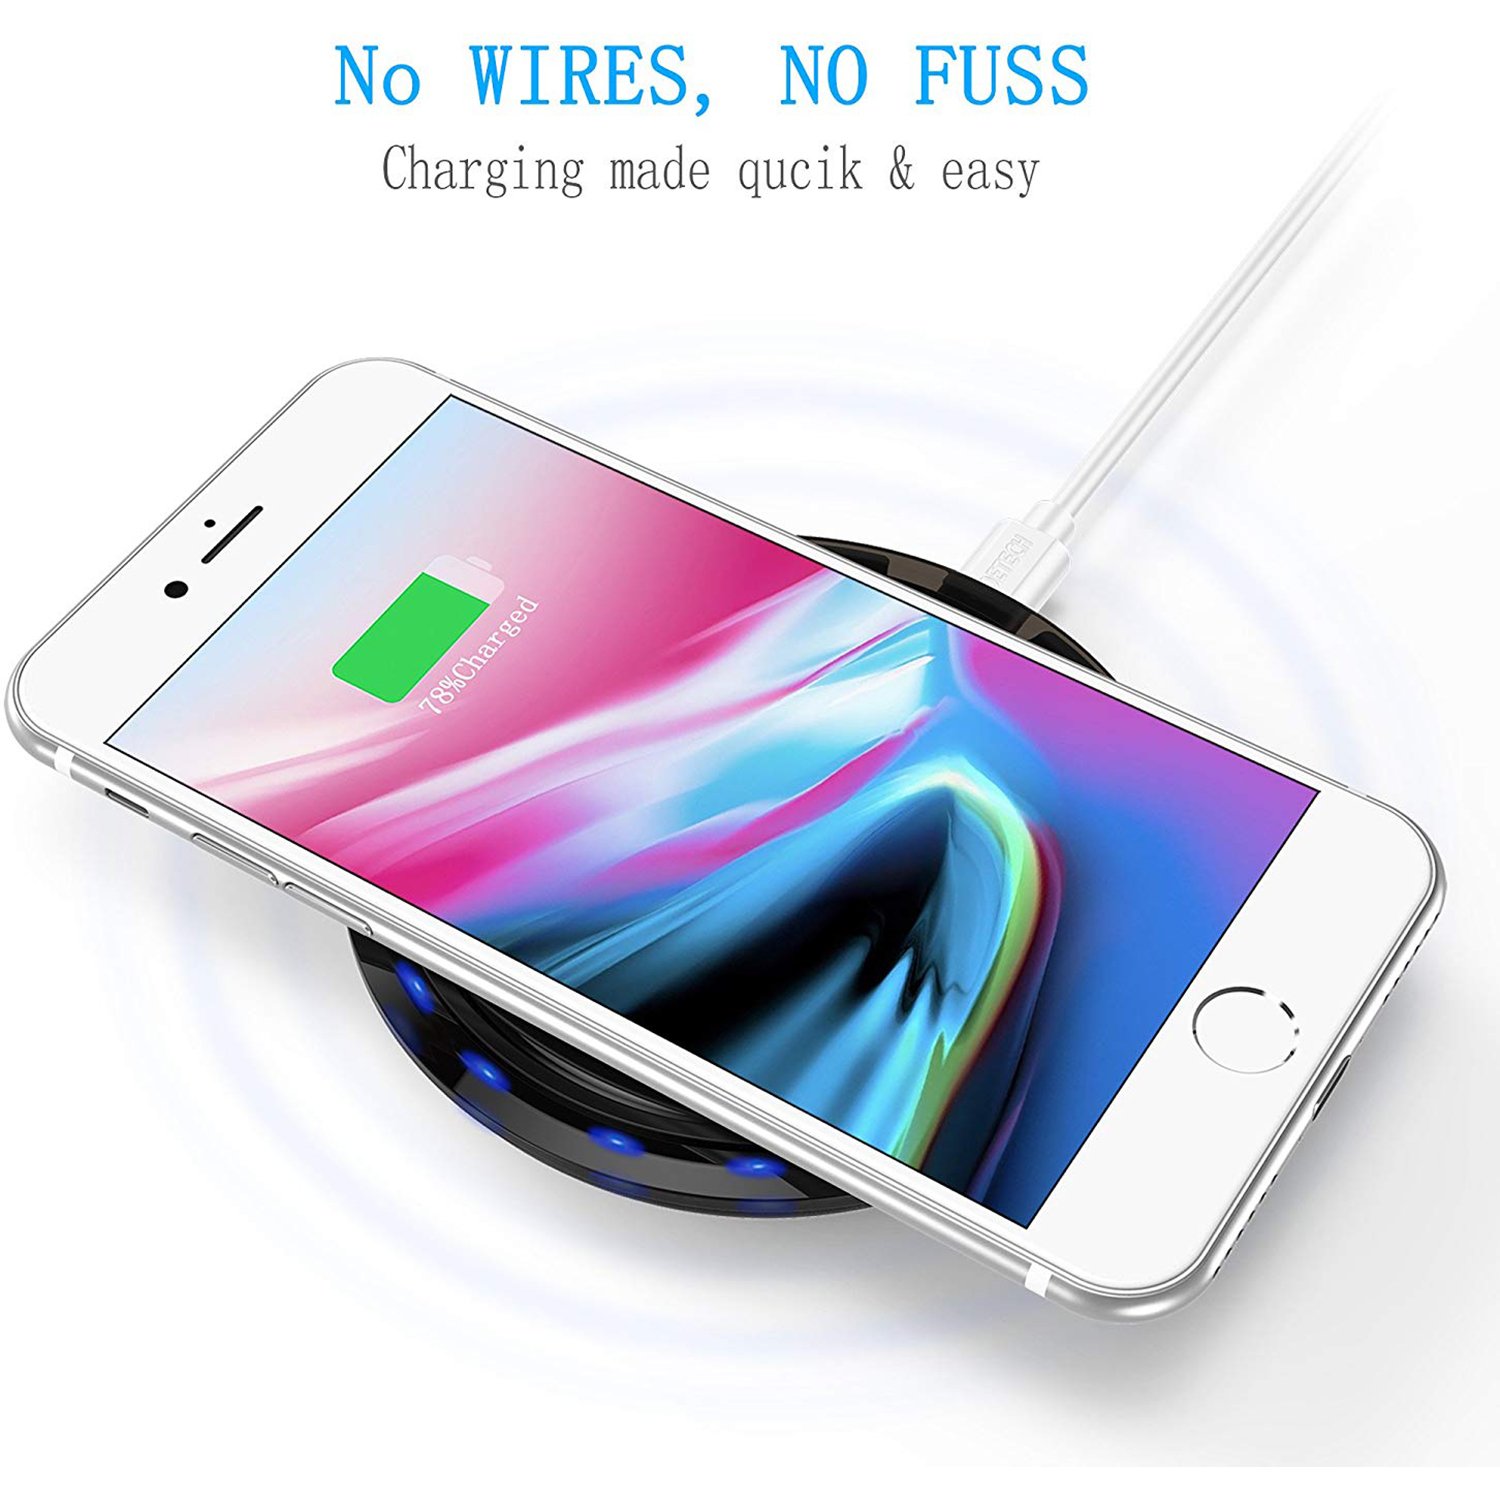 CHOETECH-Wireless-Cell-Phone-Charging-Pad-for-Qi-Enabled-Devices thumbnail 5